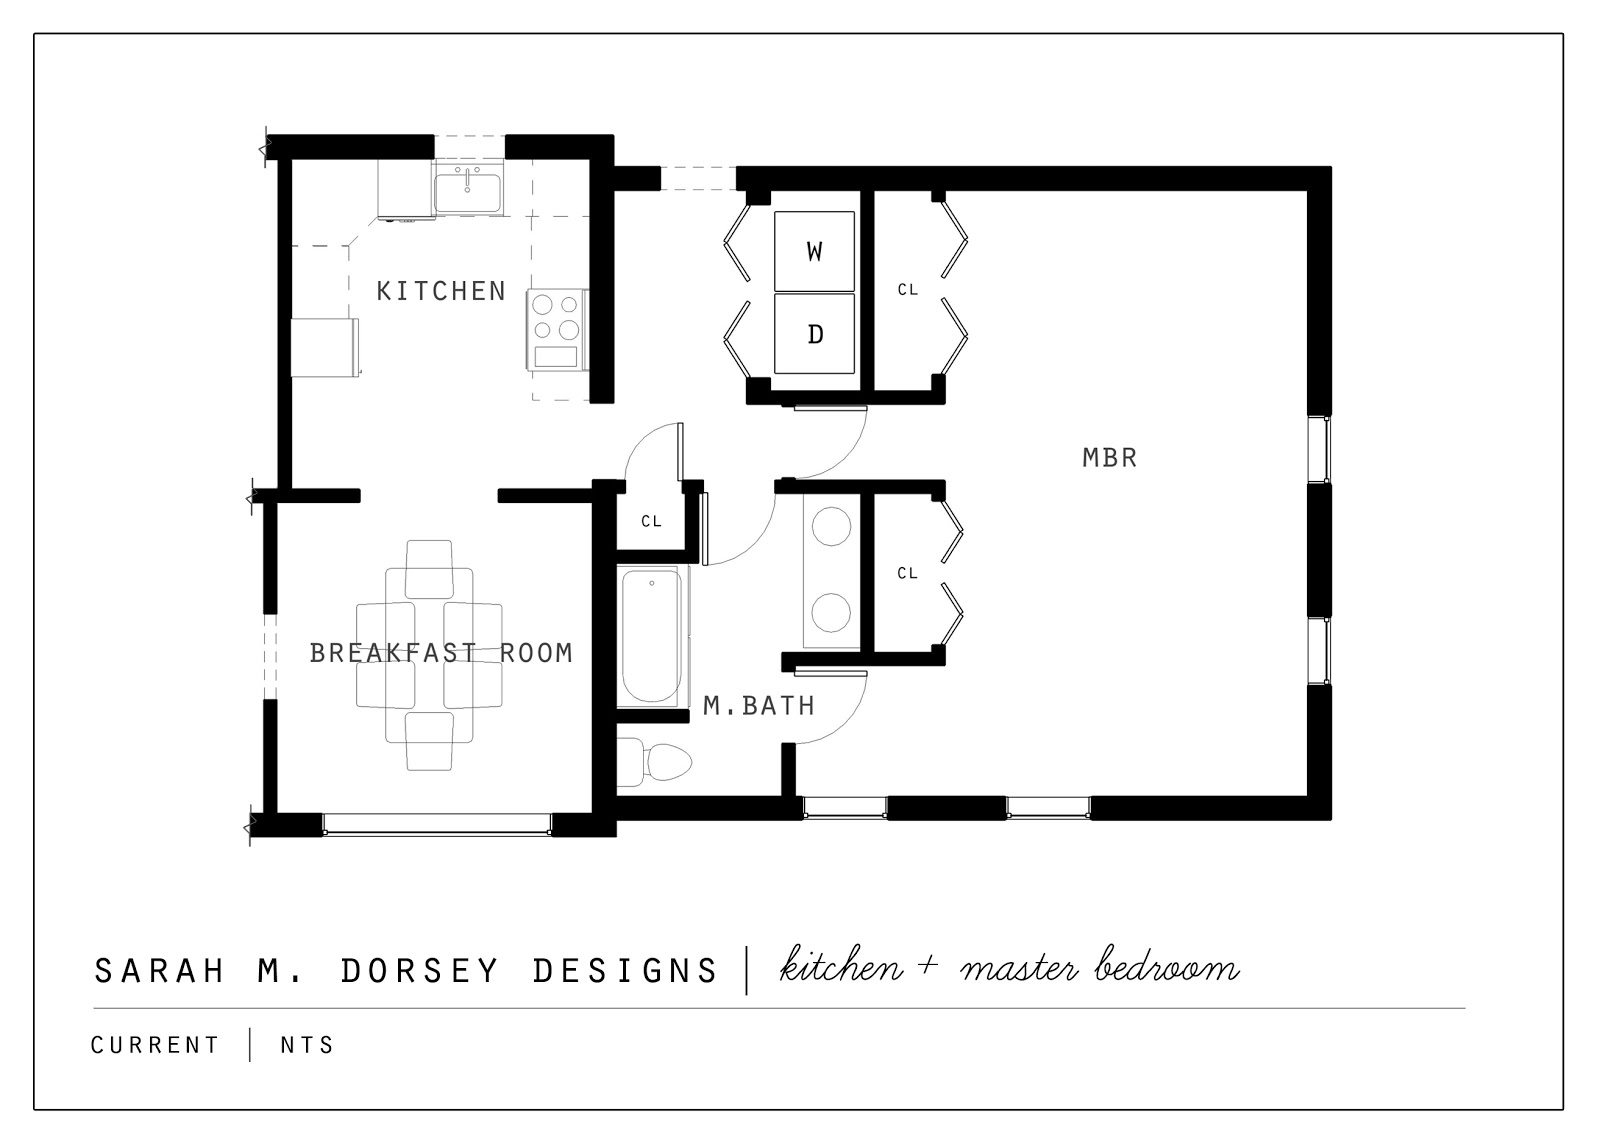 Sarah M Dorsey Designs Proposed Kitchen And Master Suite